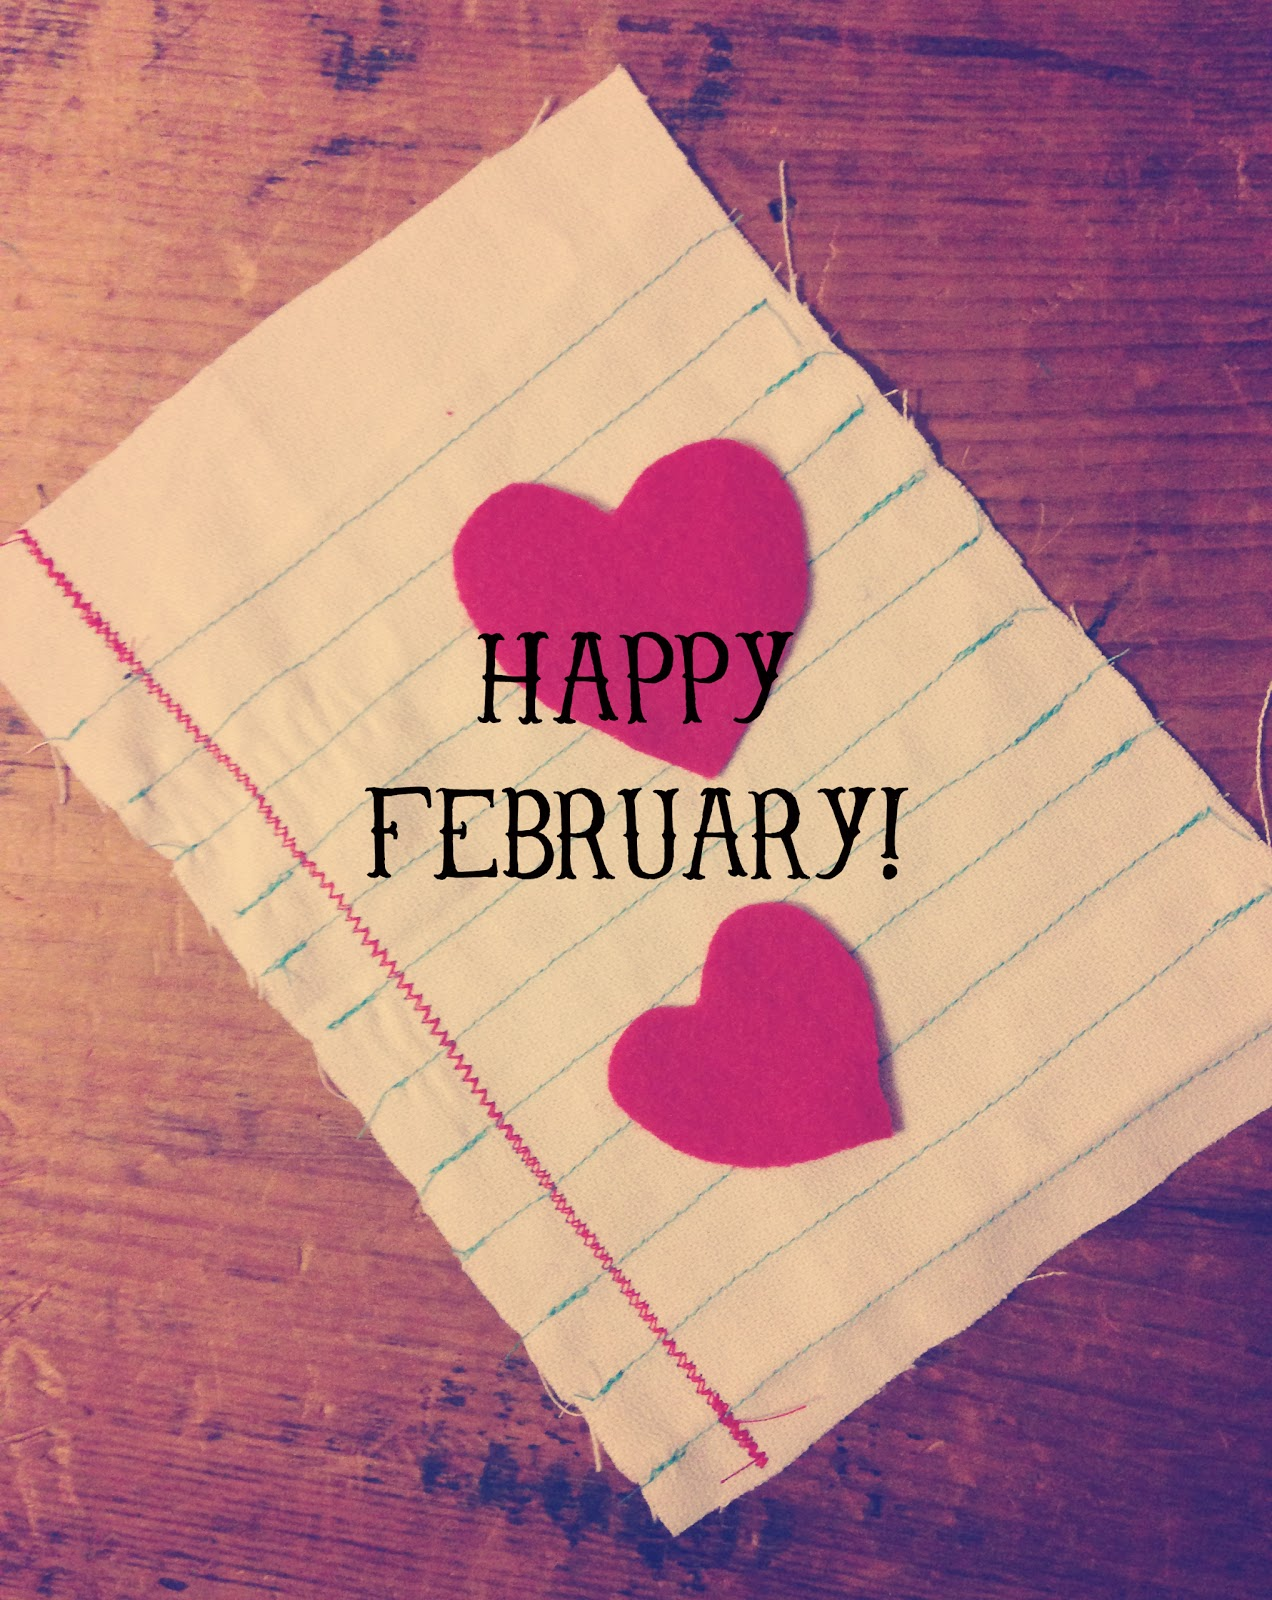 Happy February Quotes Images